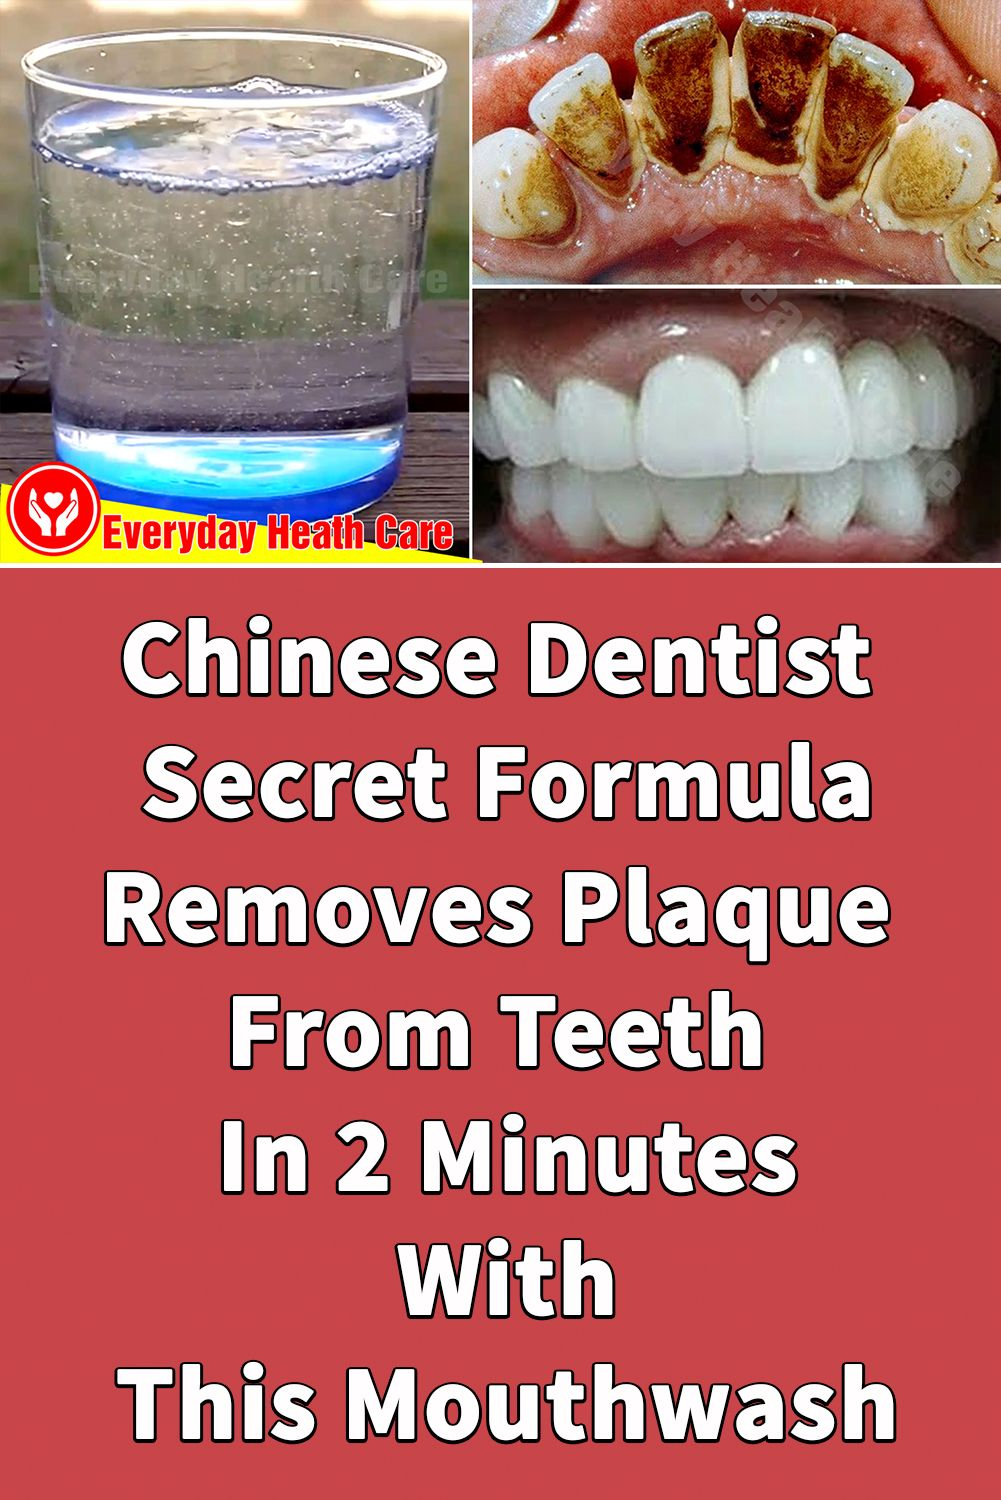 Pin on How To Whiten Teeth Naturally Everyday Health Care